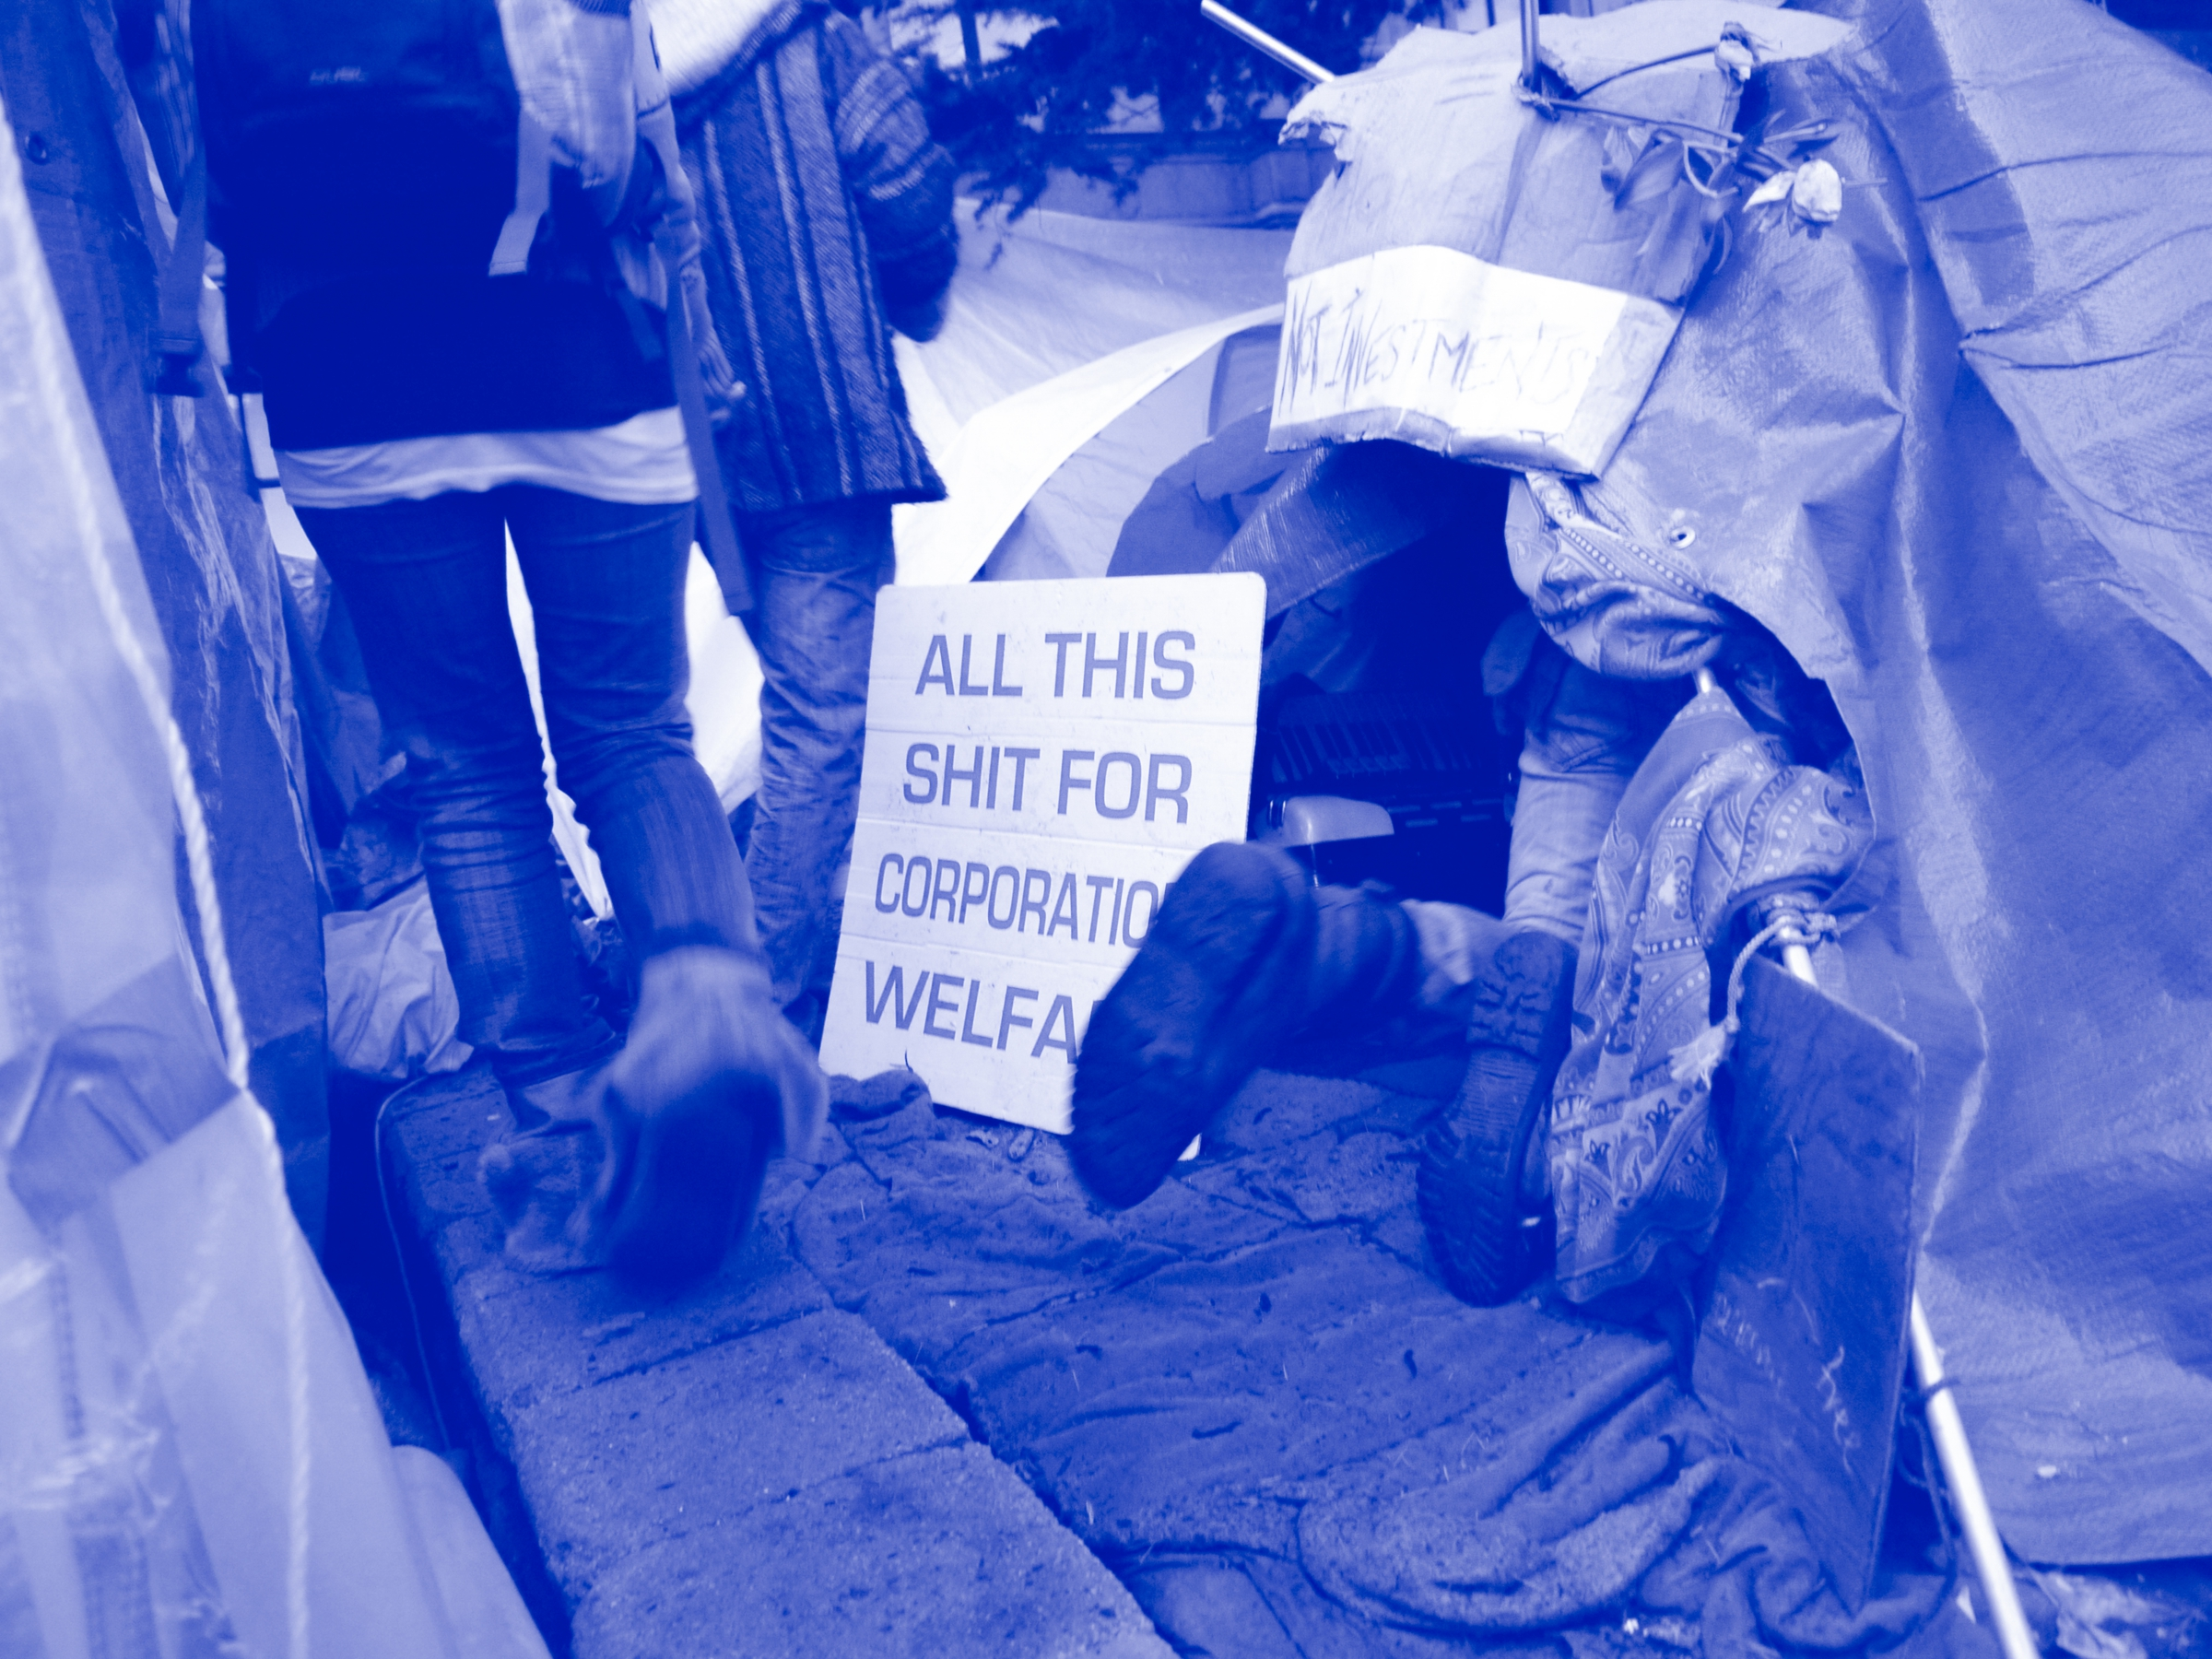 Sally Buck, Occupy Protest—All This Shit—Nov 6 2011 , 2011